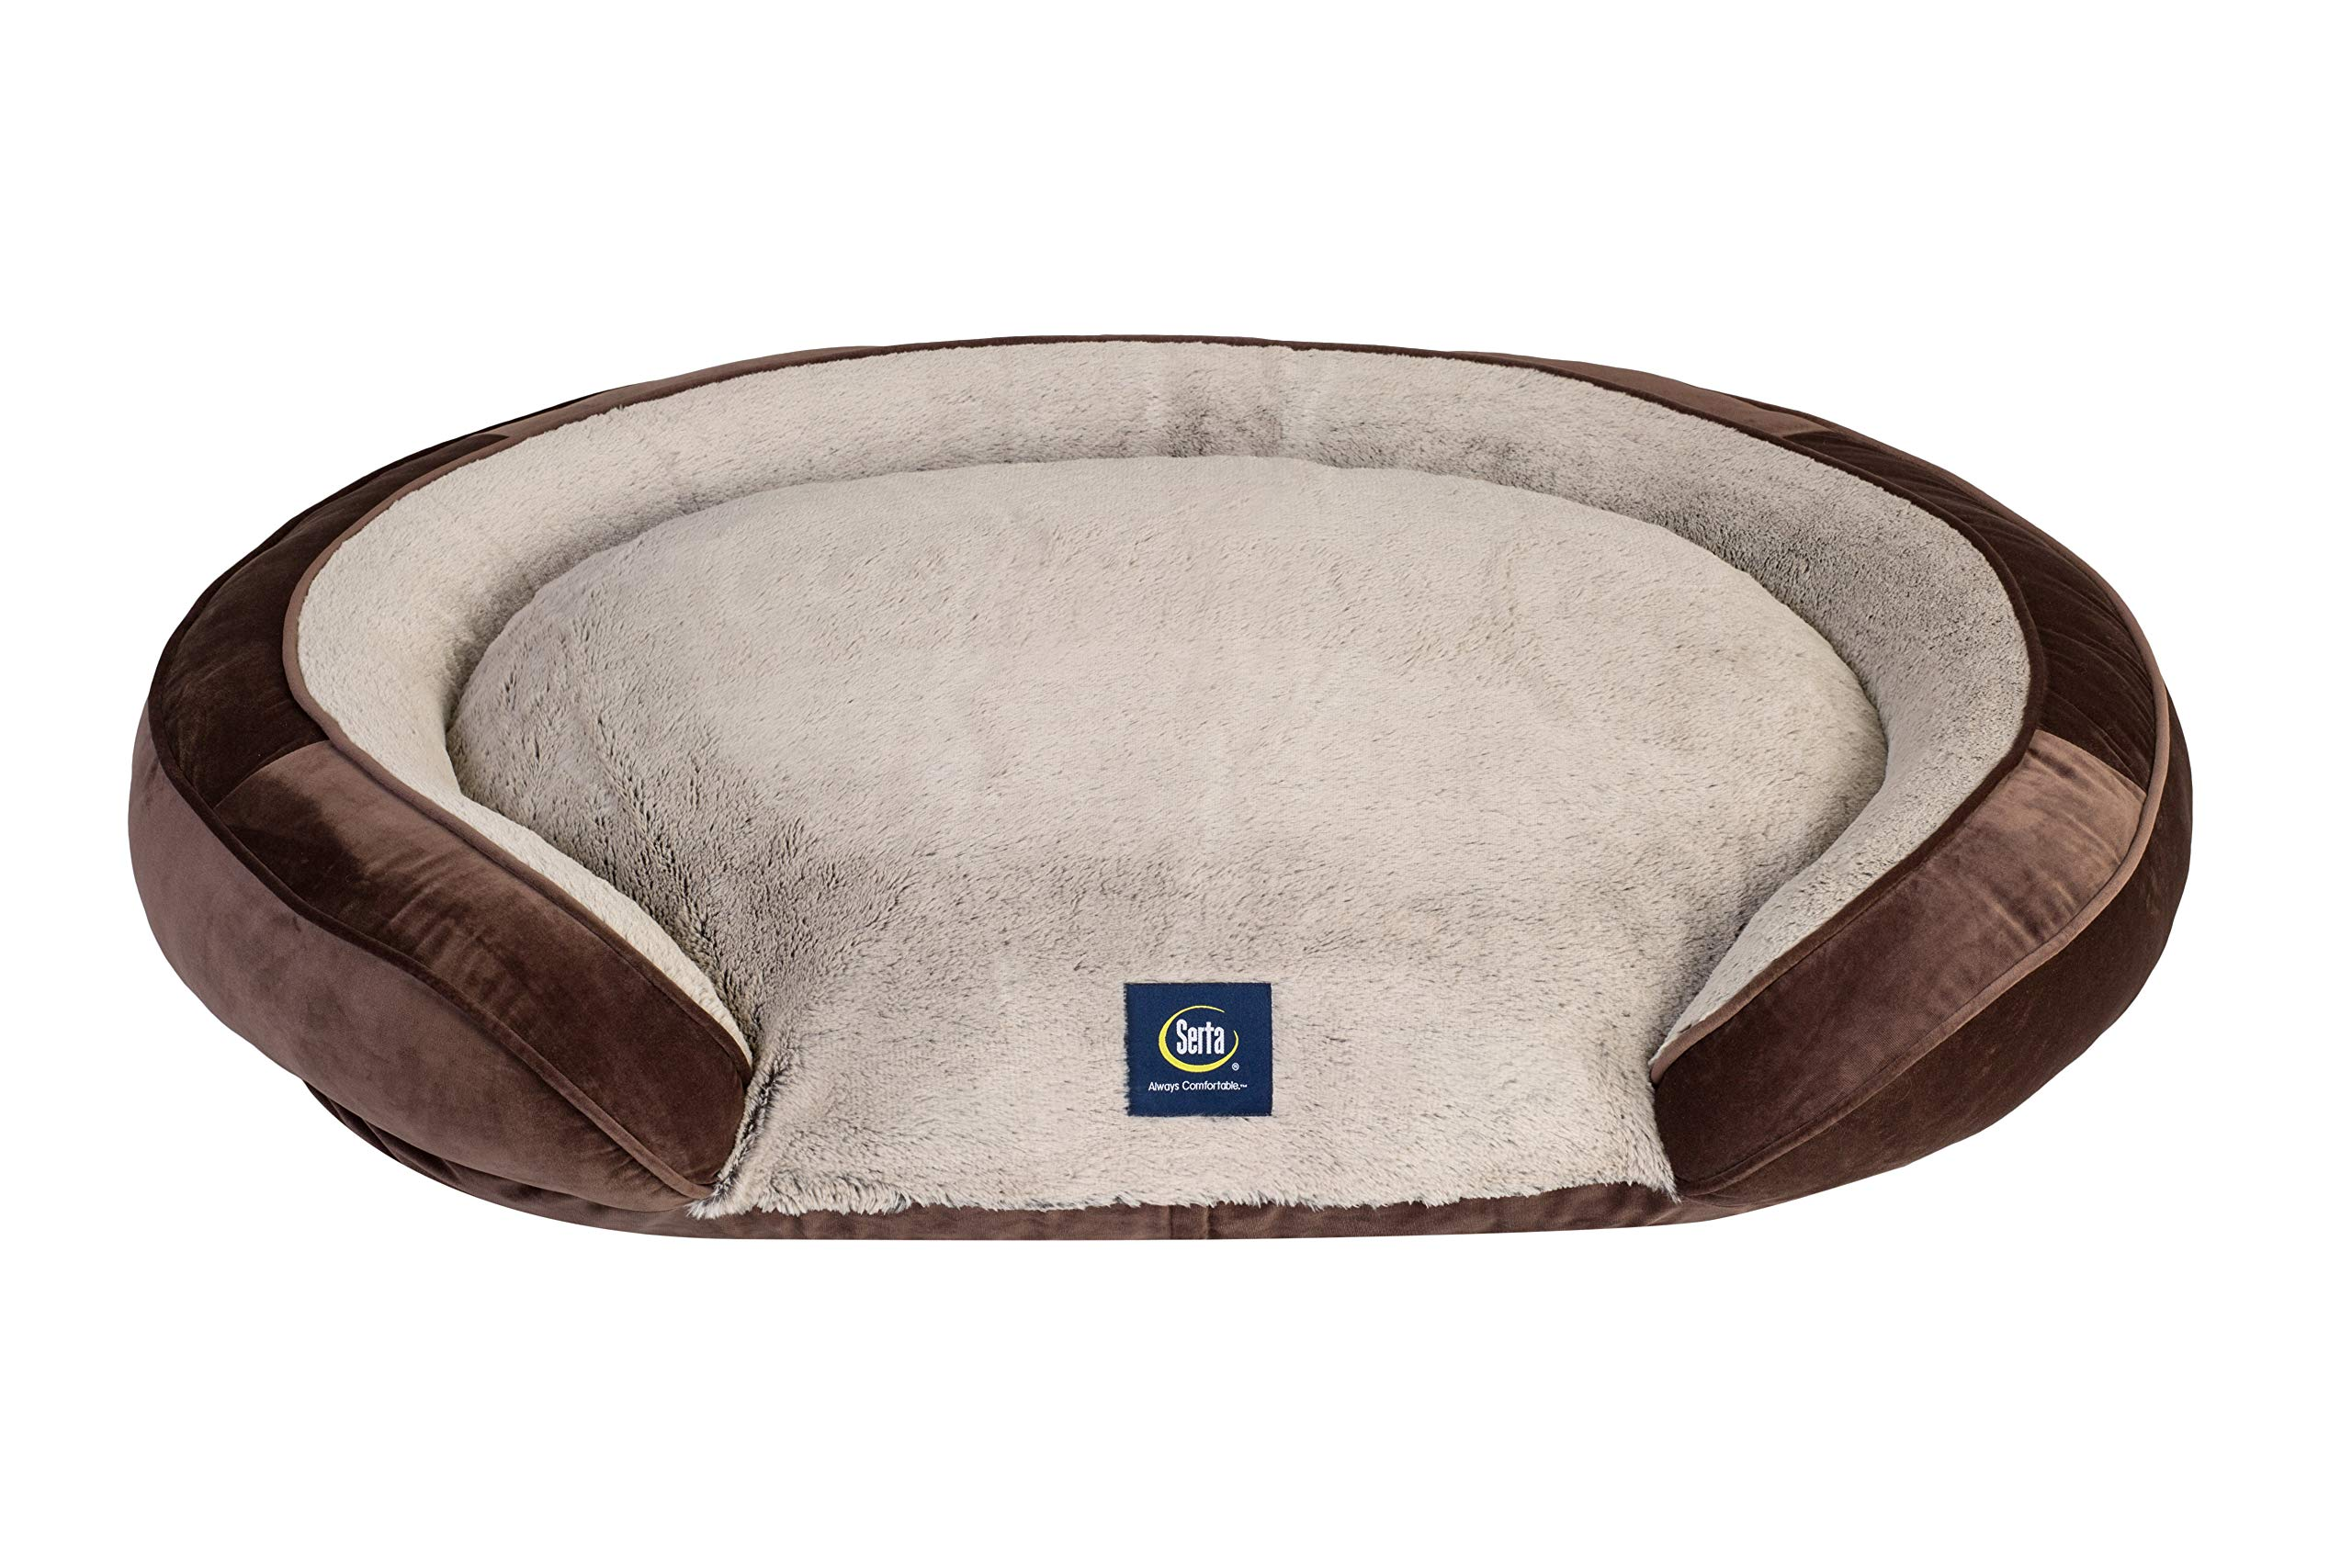 Serta Oval Couch, Brown, Large